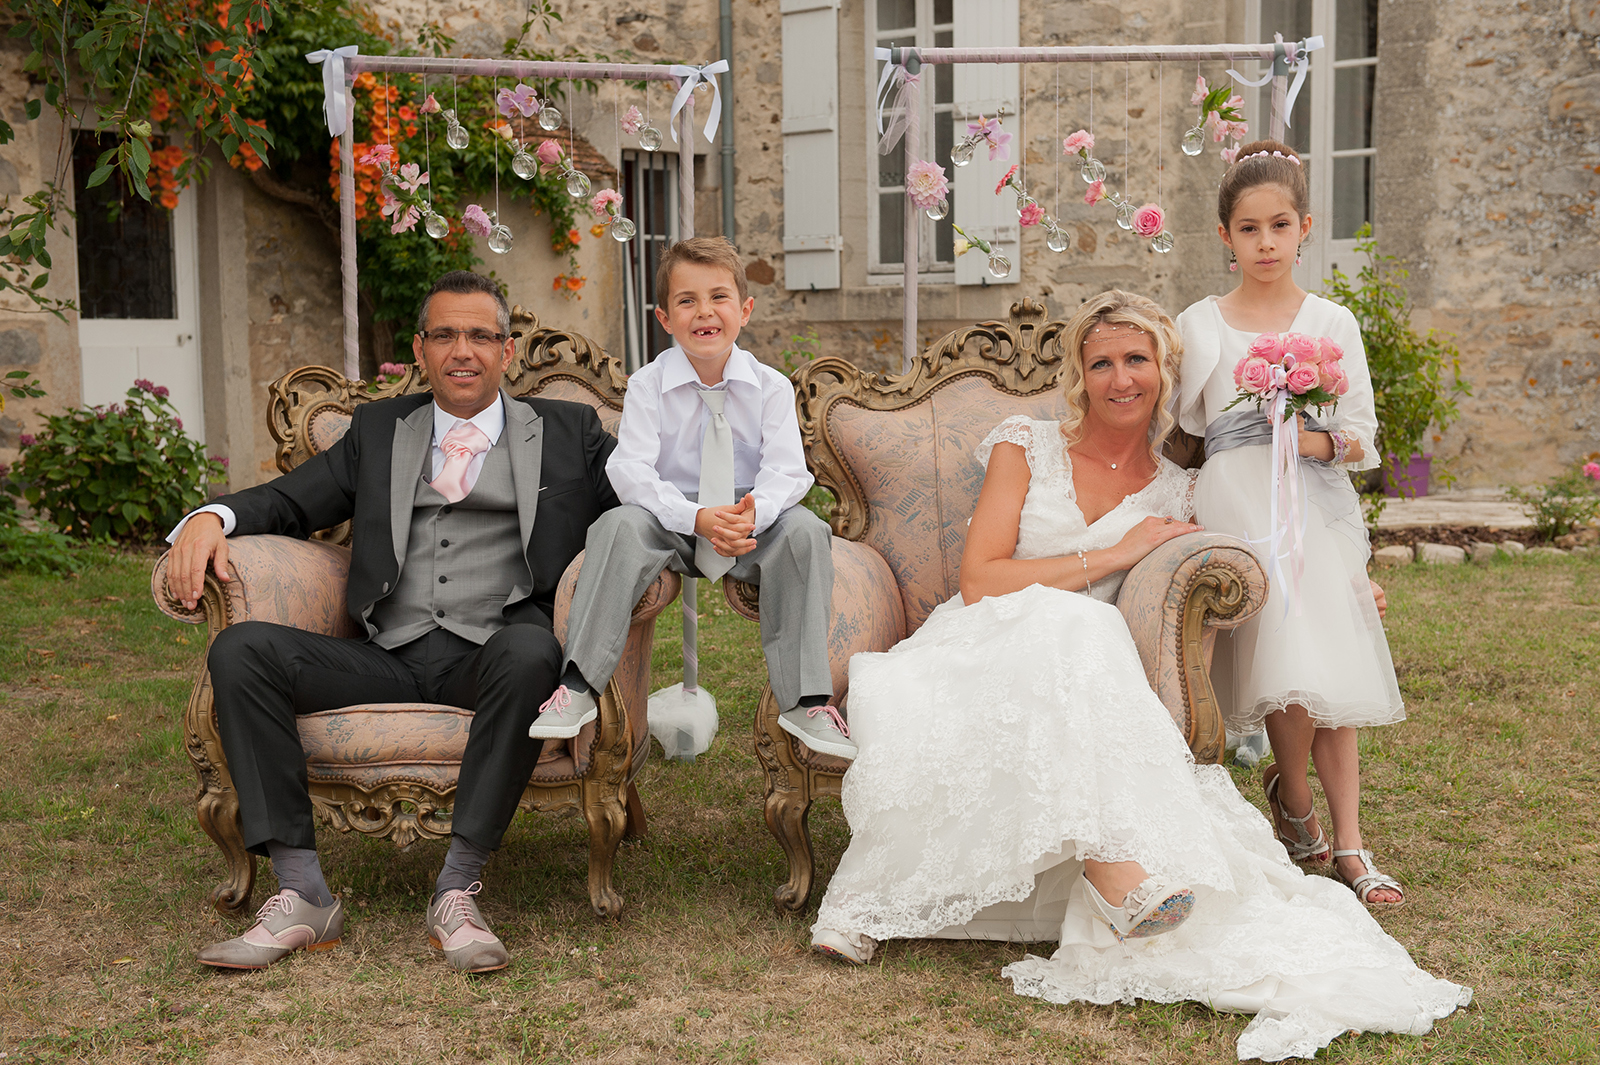 Peggy-Victor-photo-mariage-sabrina-godemert-photographe-seine-et-marne095